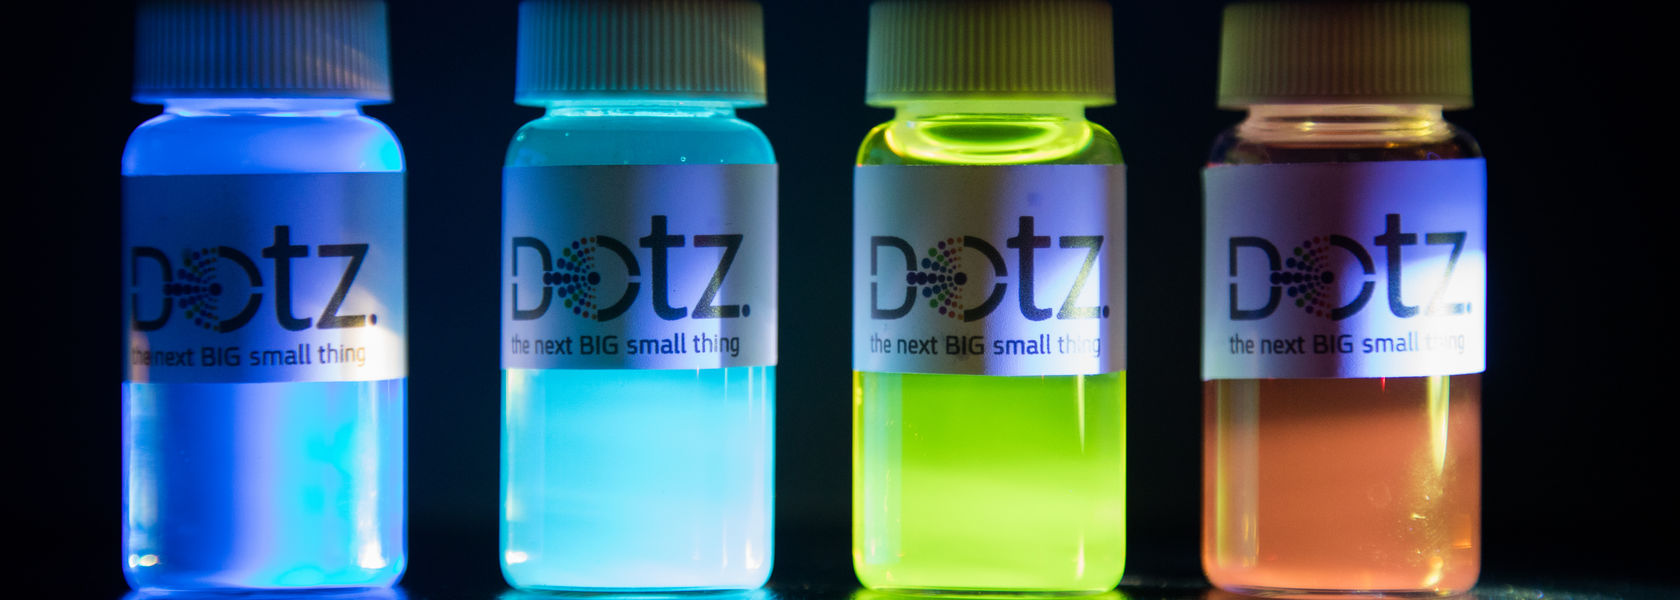 Dotz anti-counterfeiting product gets picked up by major lube manufacturer